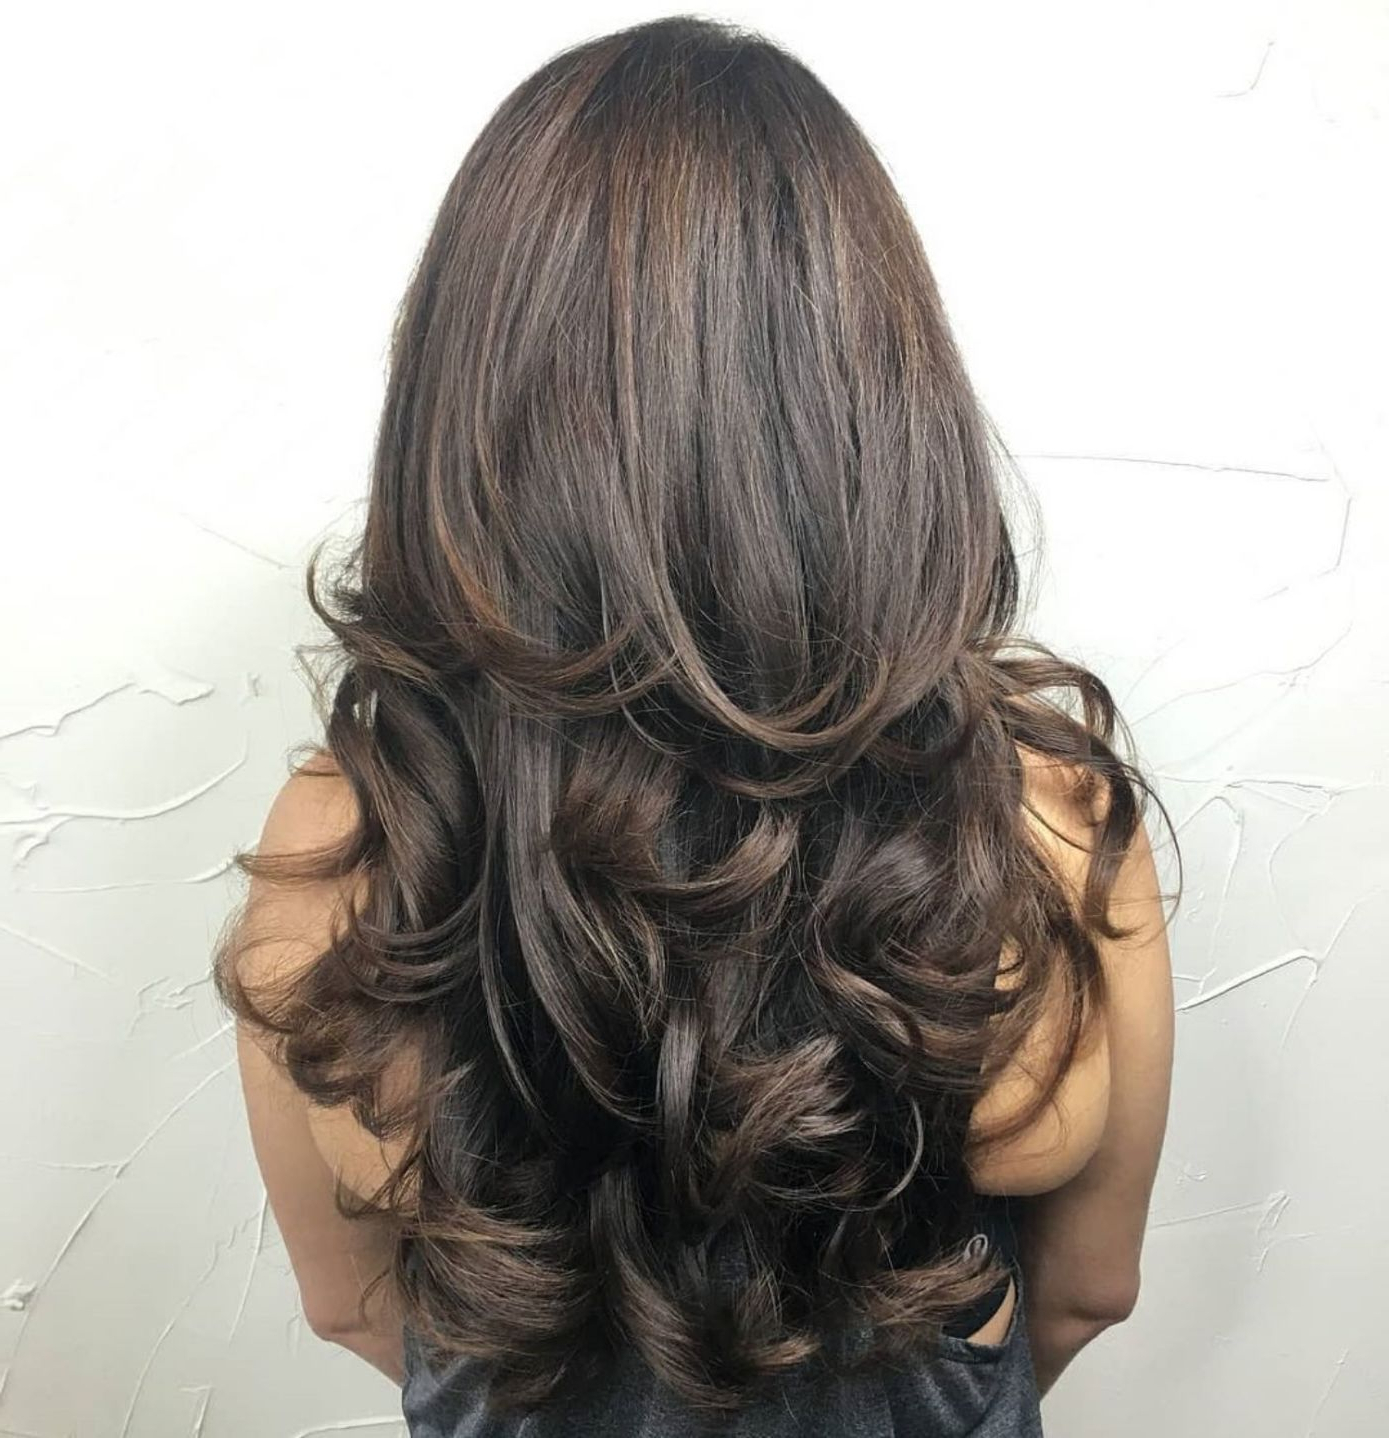 Widely Used Long Layered Half Curled Hairstyles Intended For 80 Cute Layered Hairstyles And Cuts For Long Hair In (View 2 of 20)